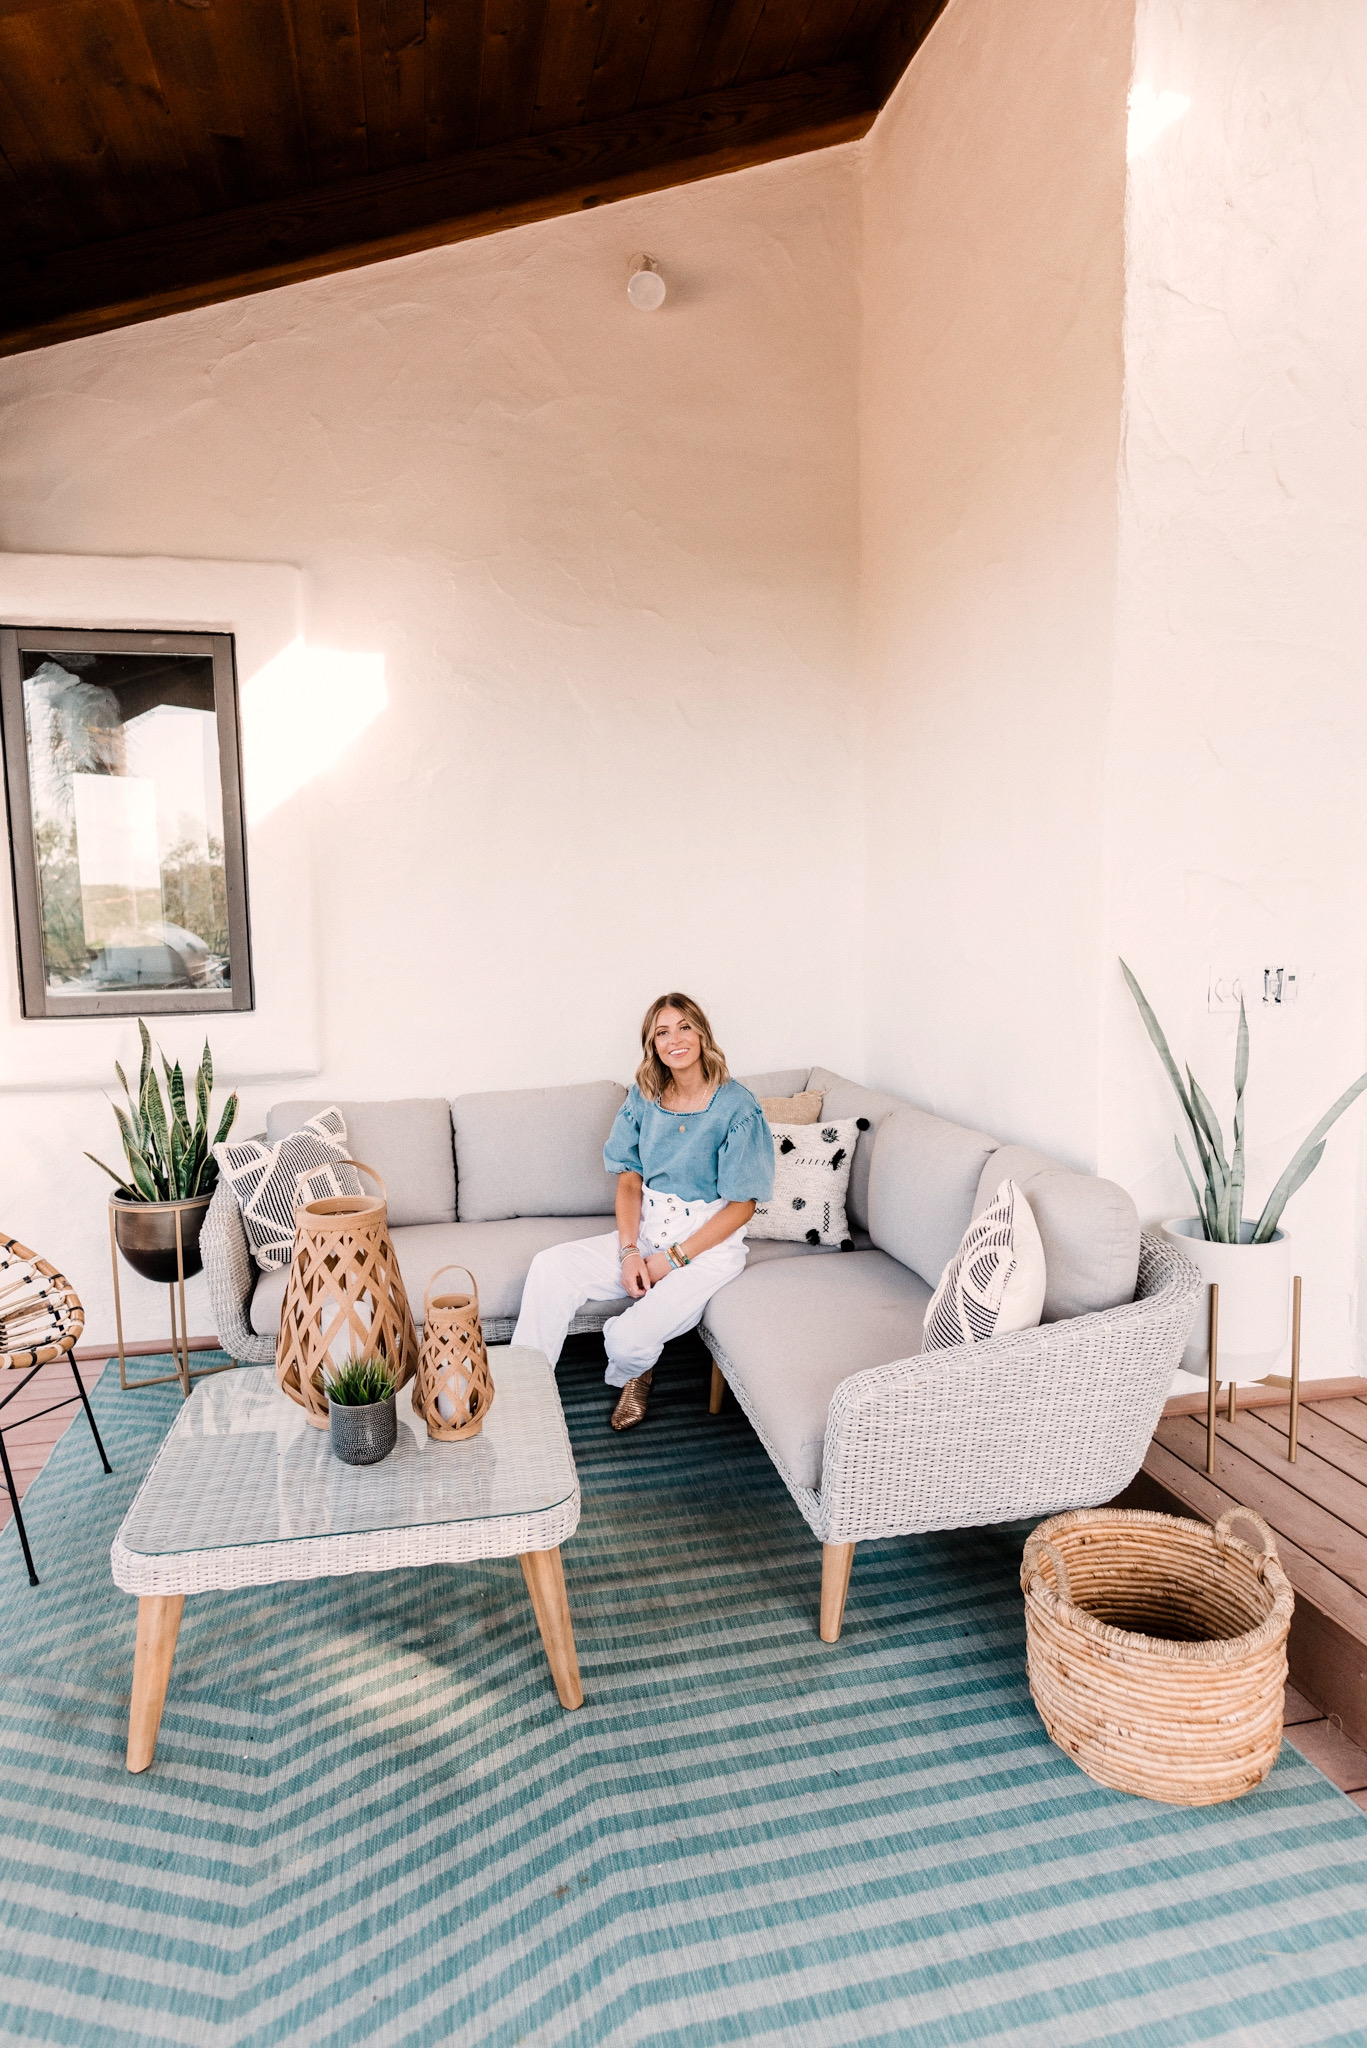 CB2 OUTDOOR DECOR featured by top San Diego lifestyle blogger, Navy Grace.   CB2 Furniture by popular San Diego life and style blog, Navy Grace: image of a woman outside on her patio decorated with CB2 hurricane lantern, Seminyak Gray Planter, snake tongue plants, blue outdoor rug, woven wicker outdoor couch, woven wicker coffee table, woven basket, and Rattan chairs.